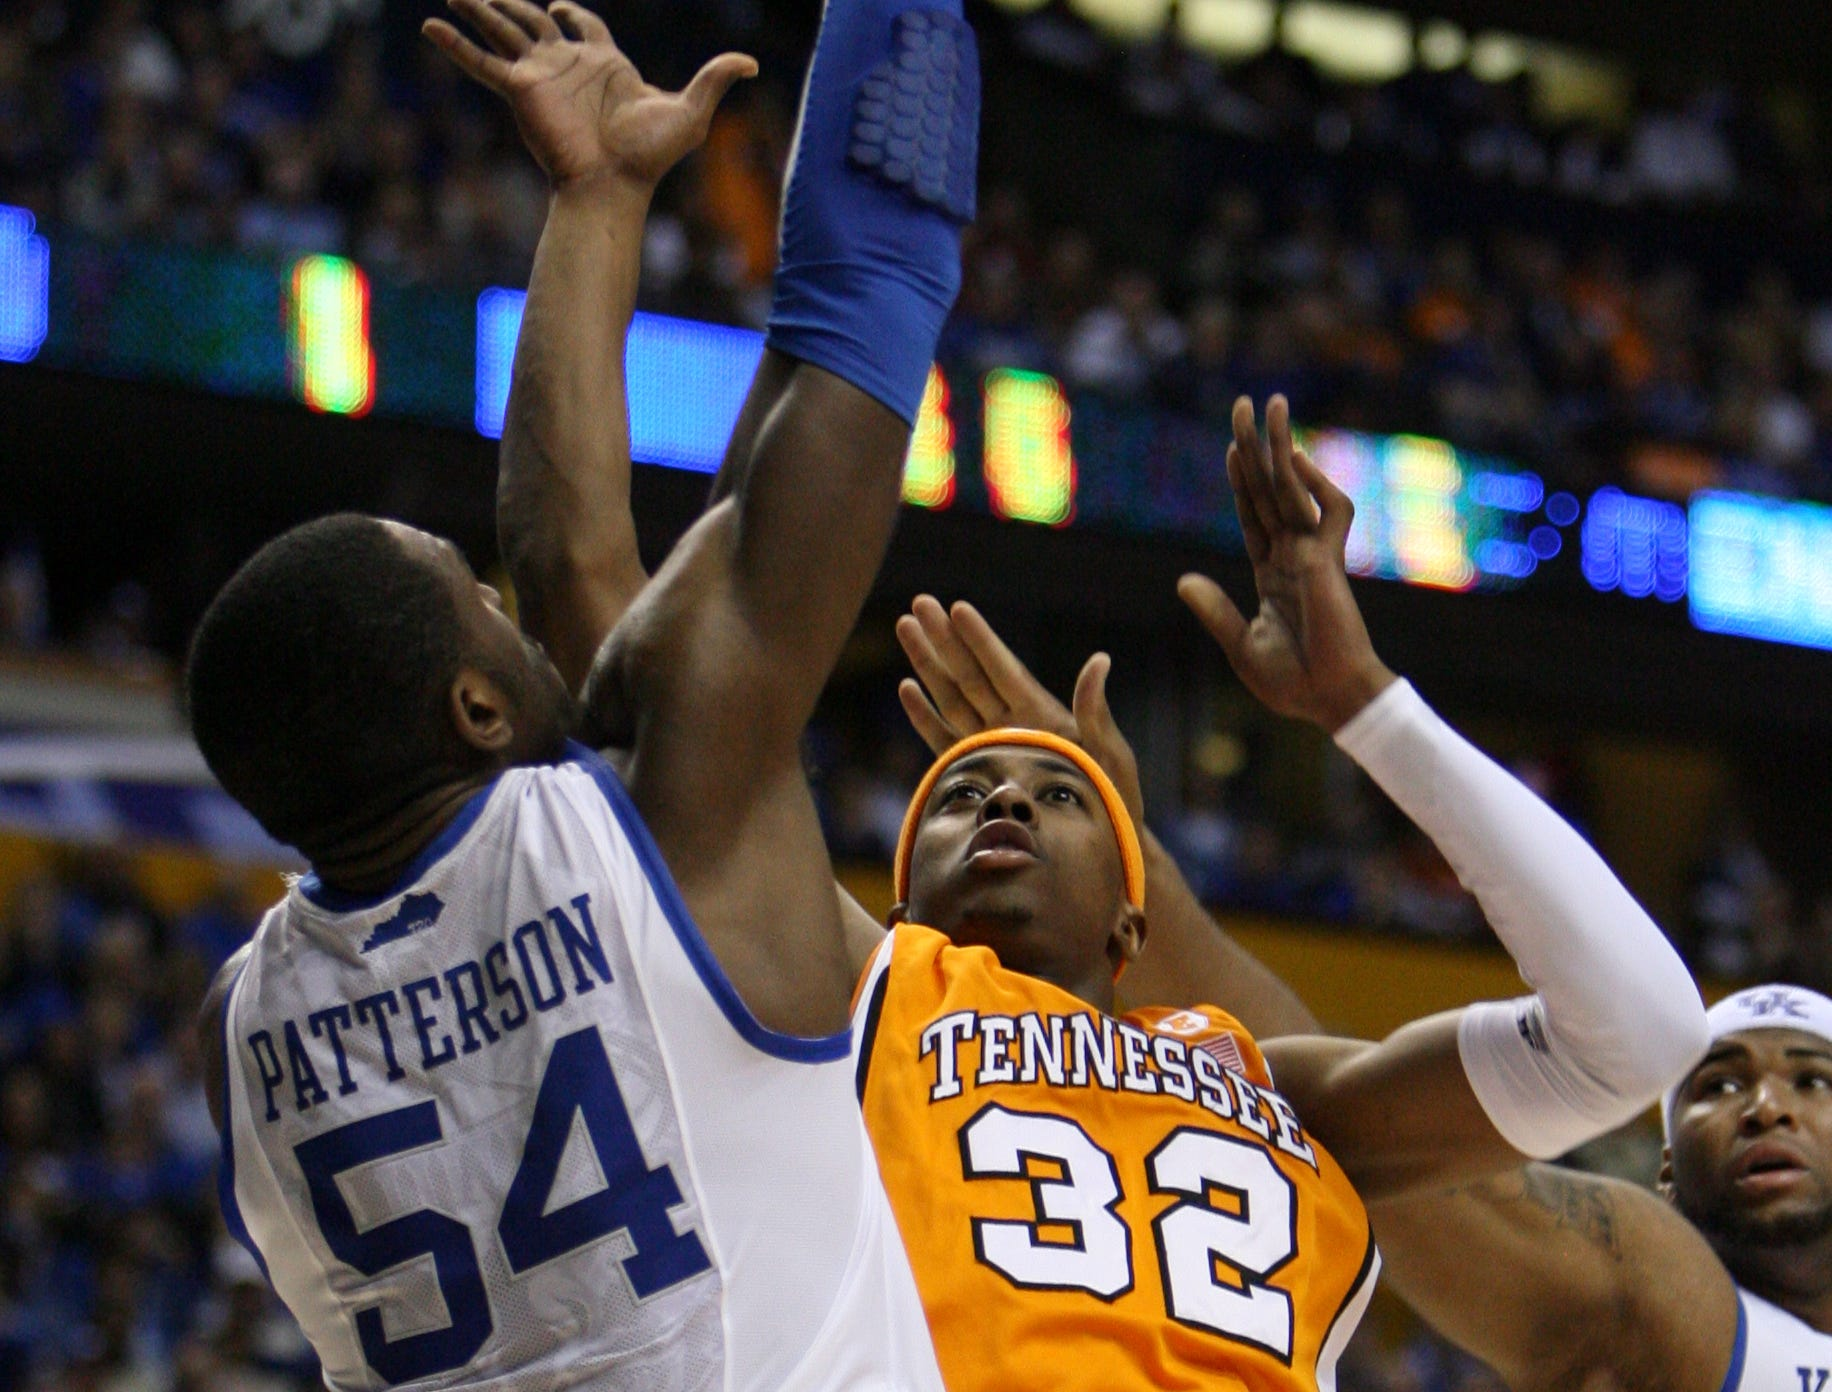 Tennessee's Scotty Hopson shoots as Kentucky's Patrick Patterson towers over him during the SEC Men's Basketball Tournament at Bridgestone Arena in Nashville Saturday, Mar. 13, 2010.